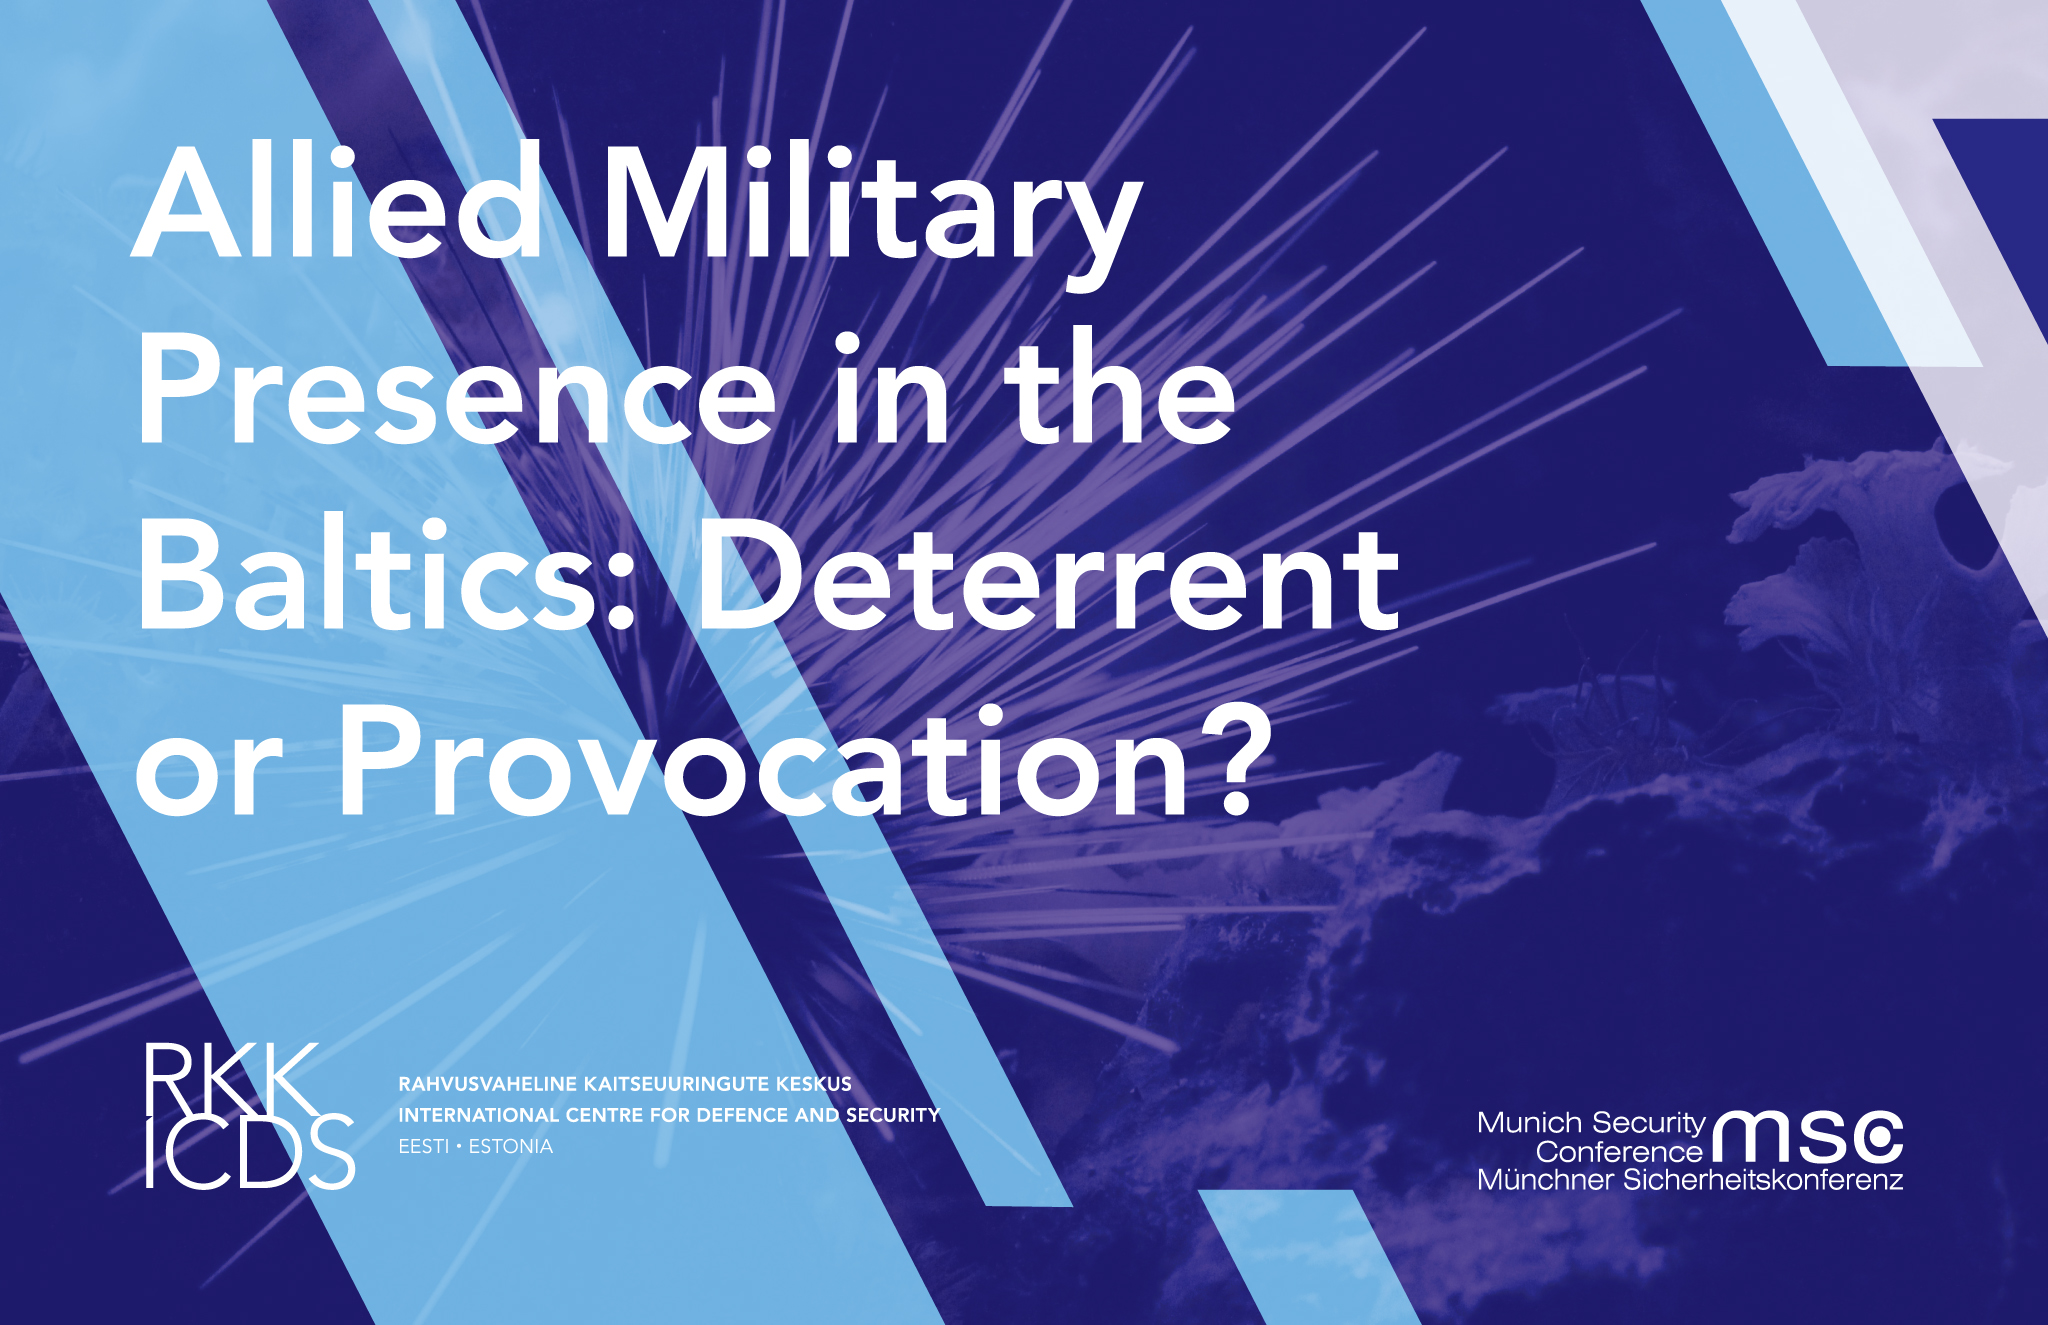 Image for ICDS in Munich: Is the Allied Military Presence in the Baltics Deterrence or Provocation?